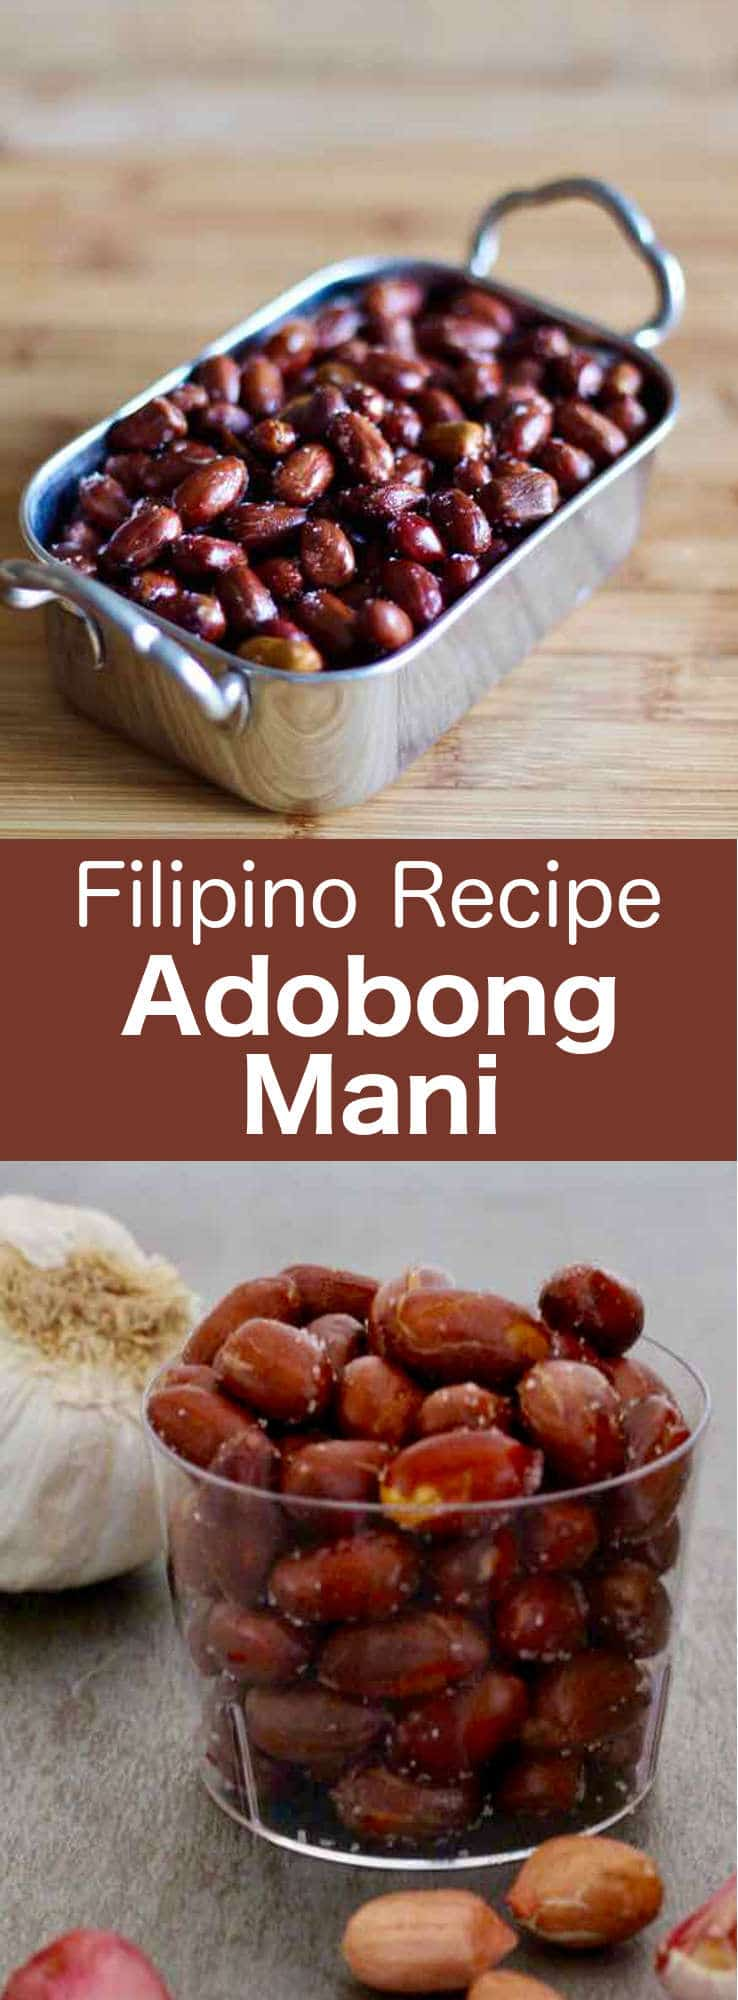 Adobong mani is a traditional Filipino street food recipe prepared with delicious garlic-flavored deep-fried peanuts. #philippines #196flavors